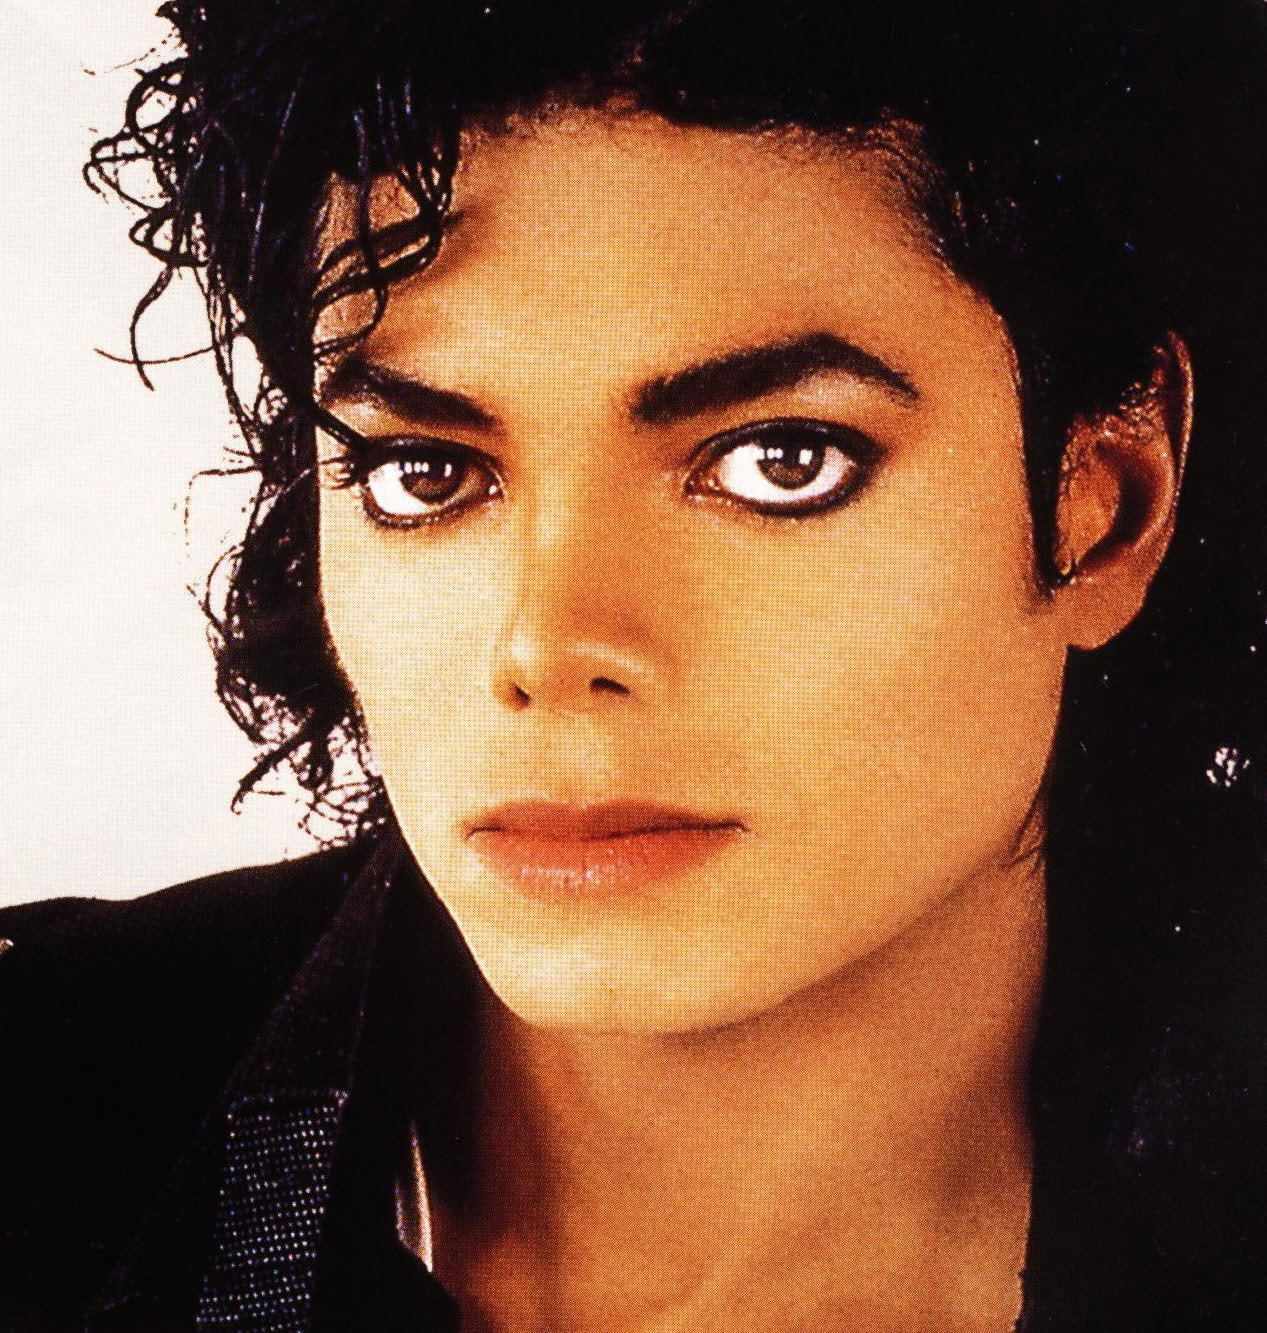 michael jackson | Michael Jackson Close-Up Large Photo | Michael ...